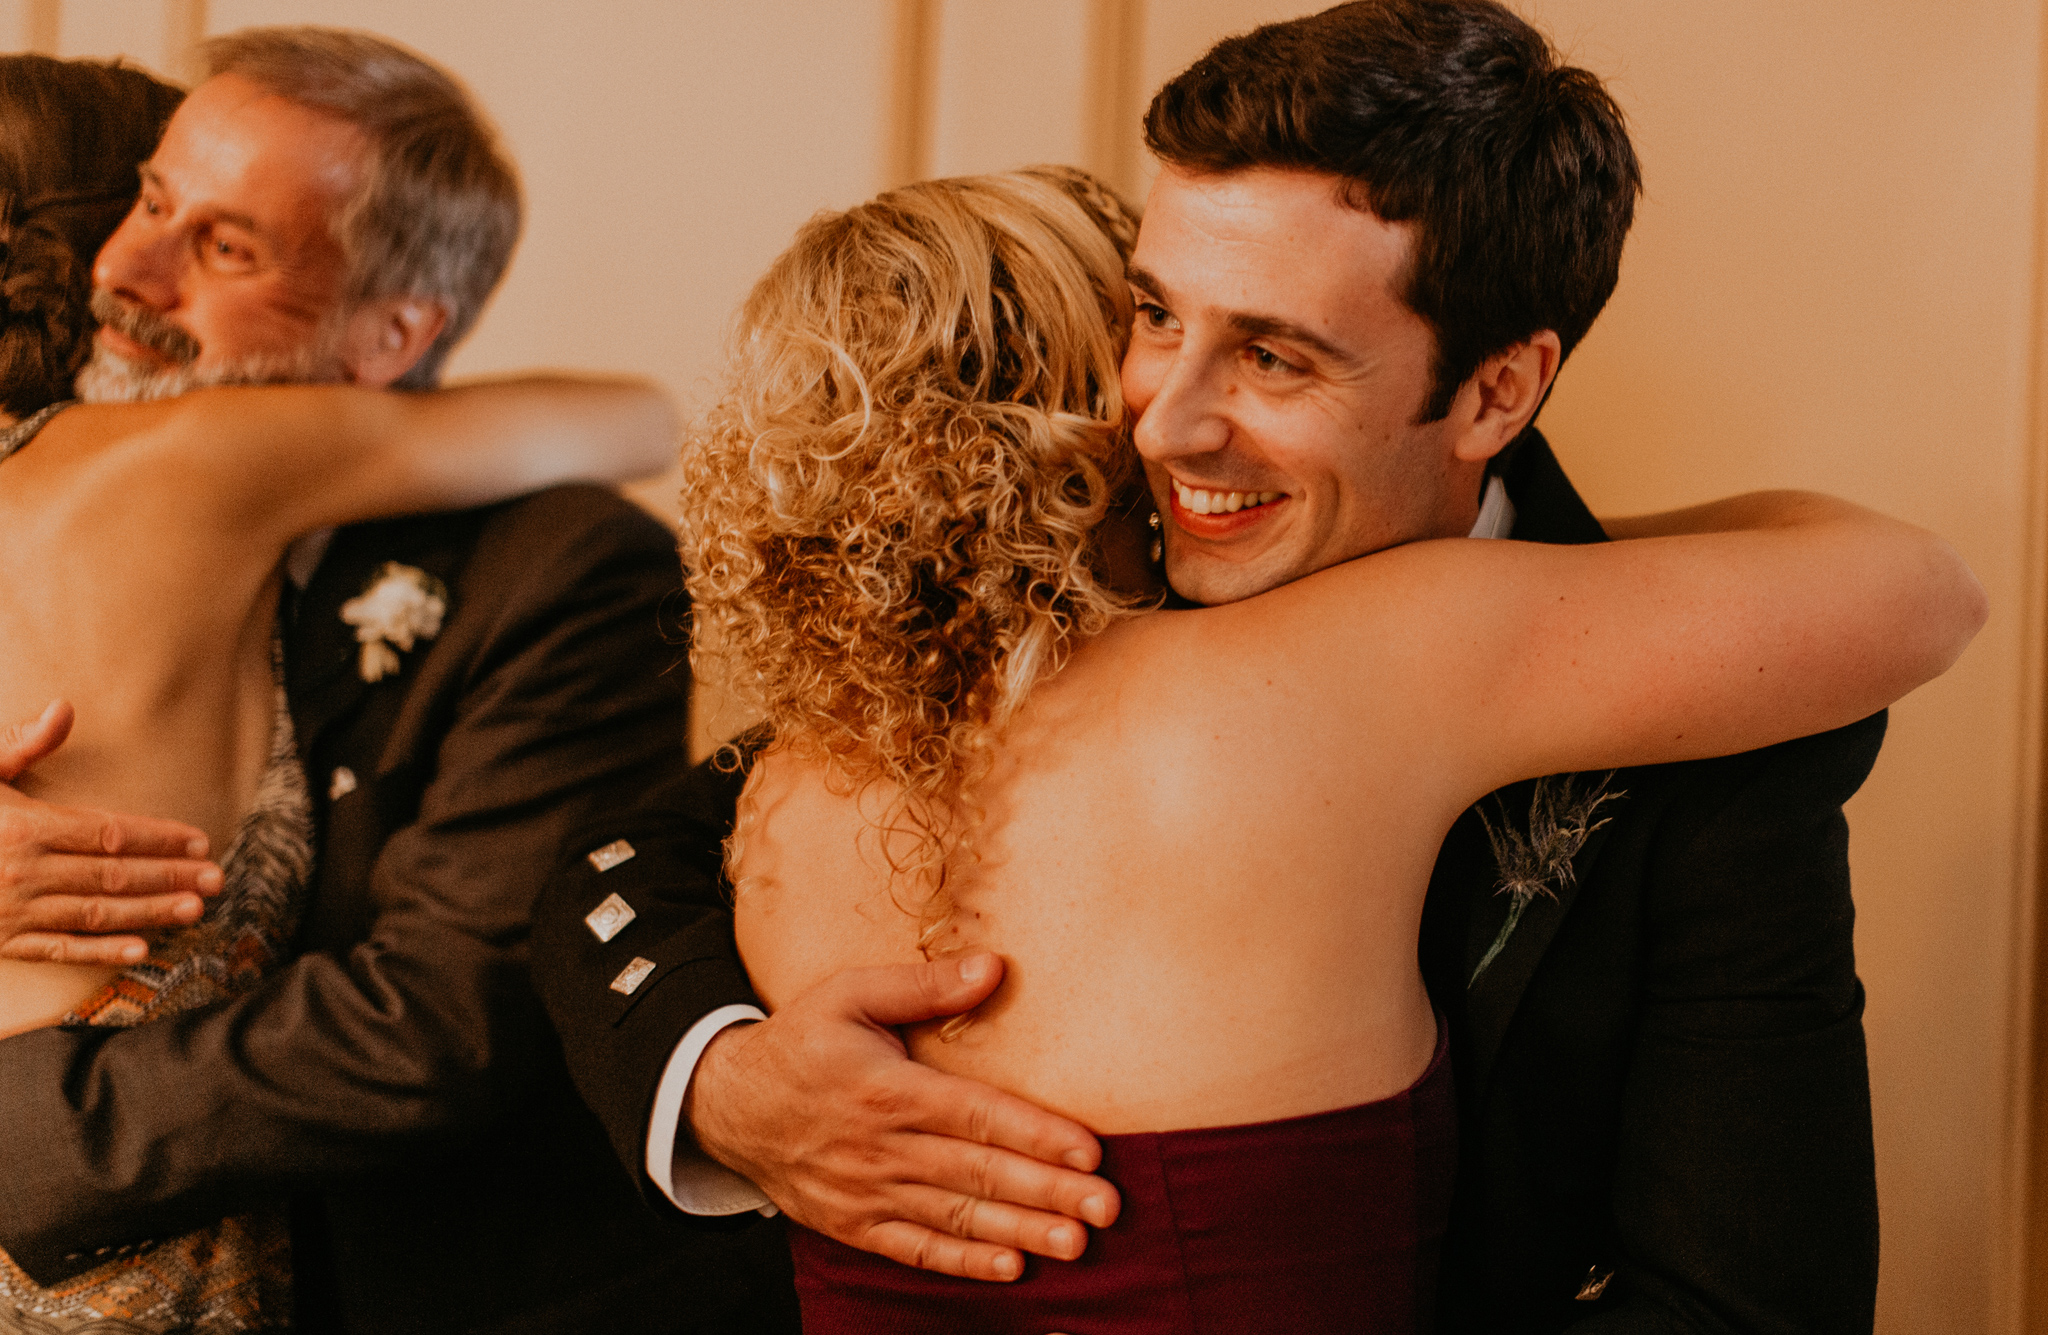 Groom hugs guest at wedding in candid photo